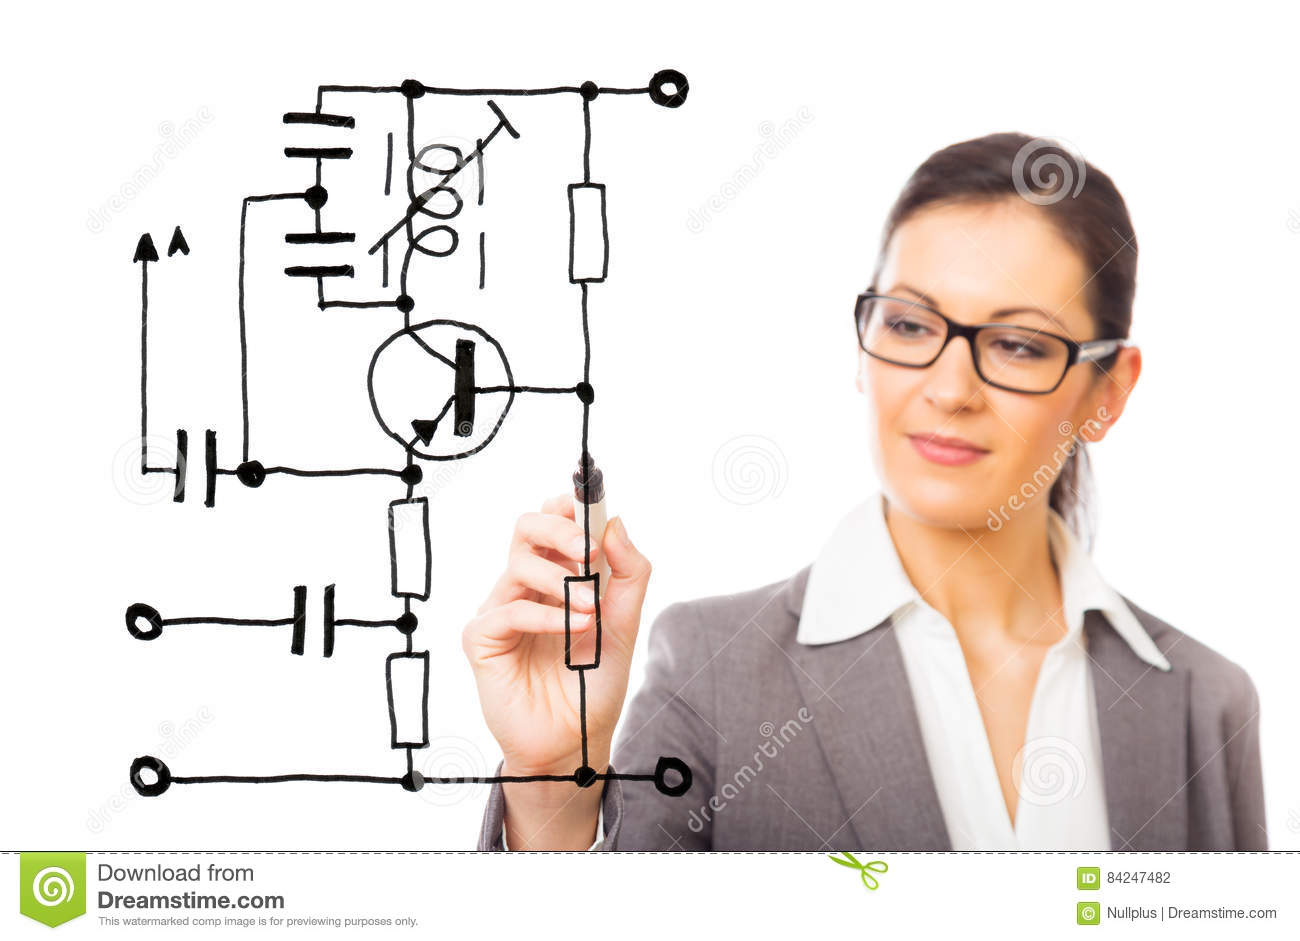 Electrical Engineering Stock Photo Image Of Designing 84247482 Simple Electronic Circuit For Students